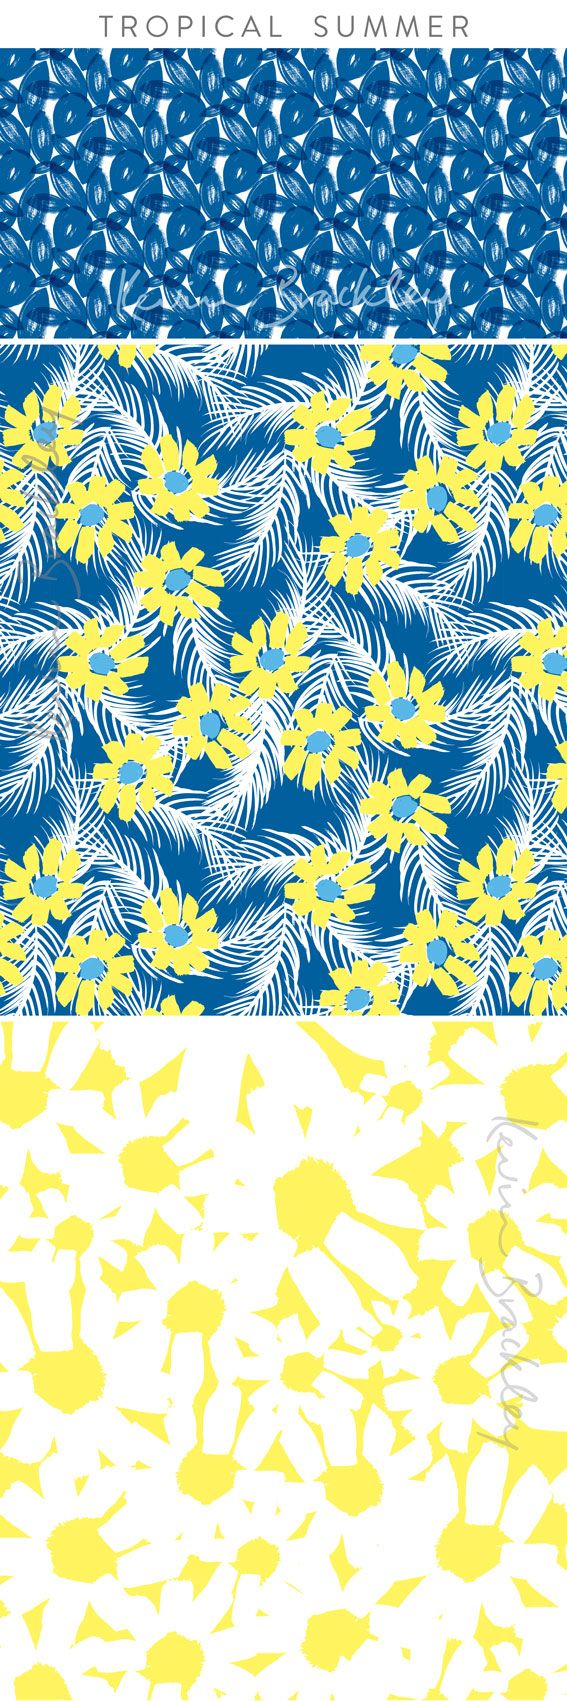 Tropical Summer collection - bright florals for those balmy days!